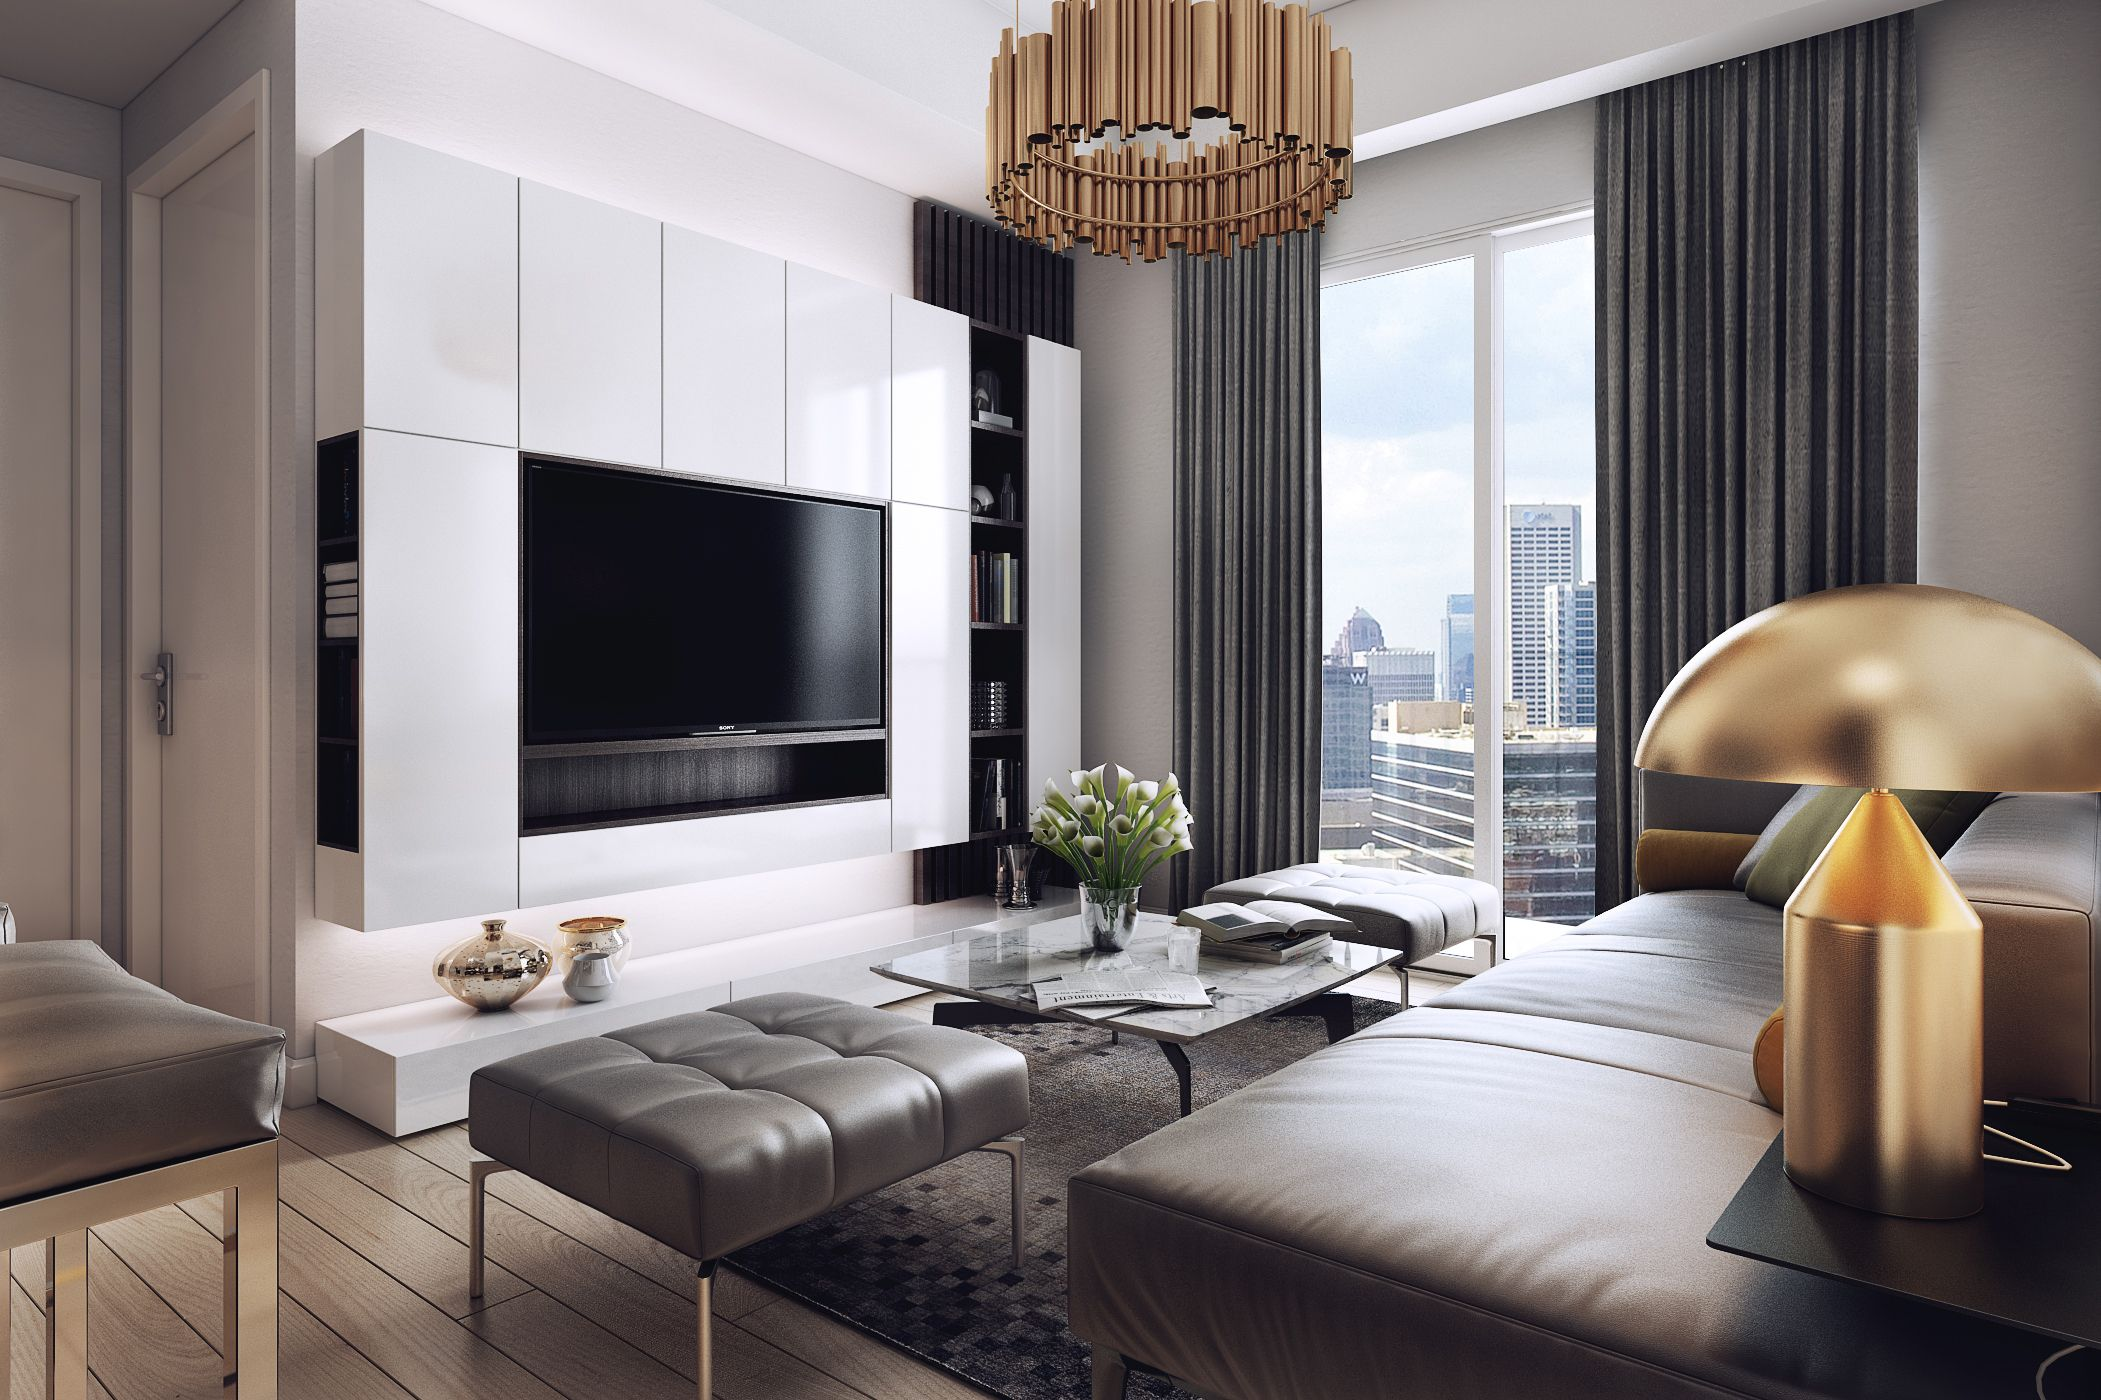 Luxurious apartment with dark interiors and stunning lighting see more http